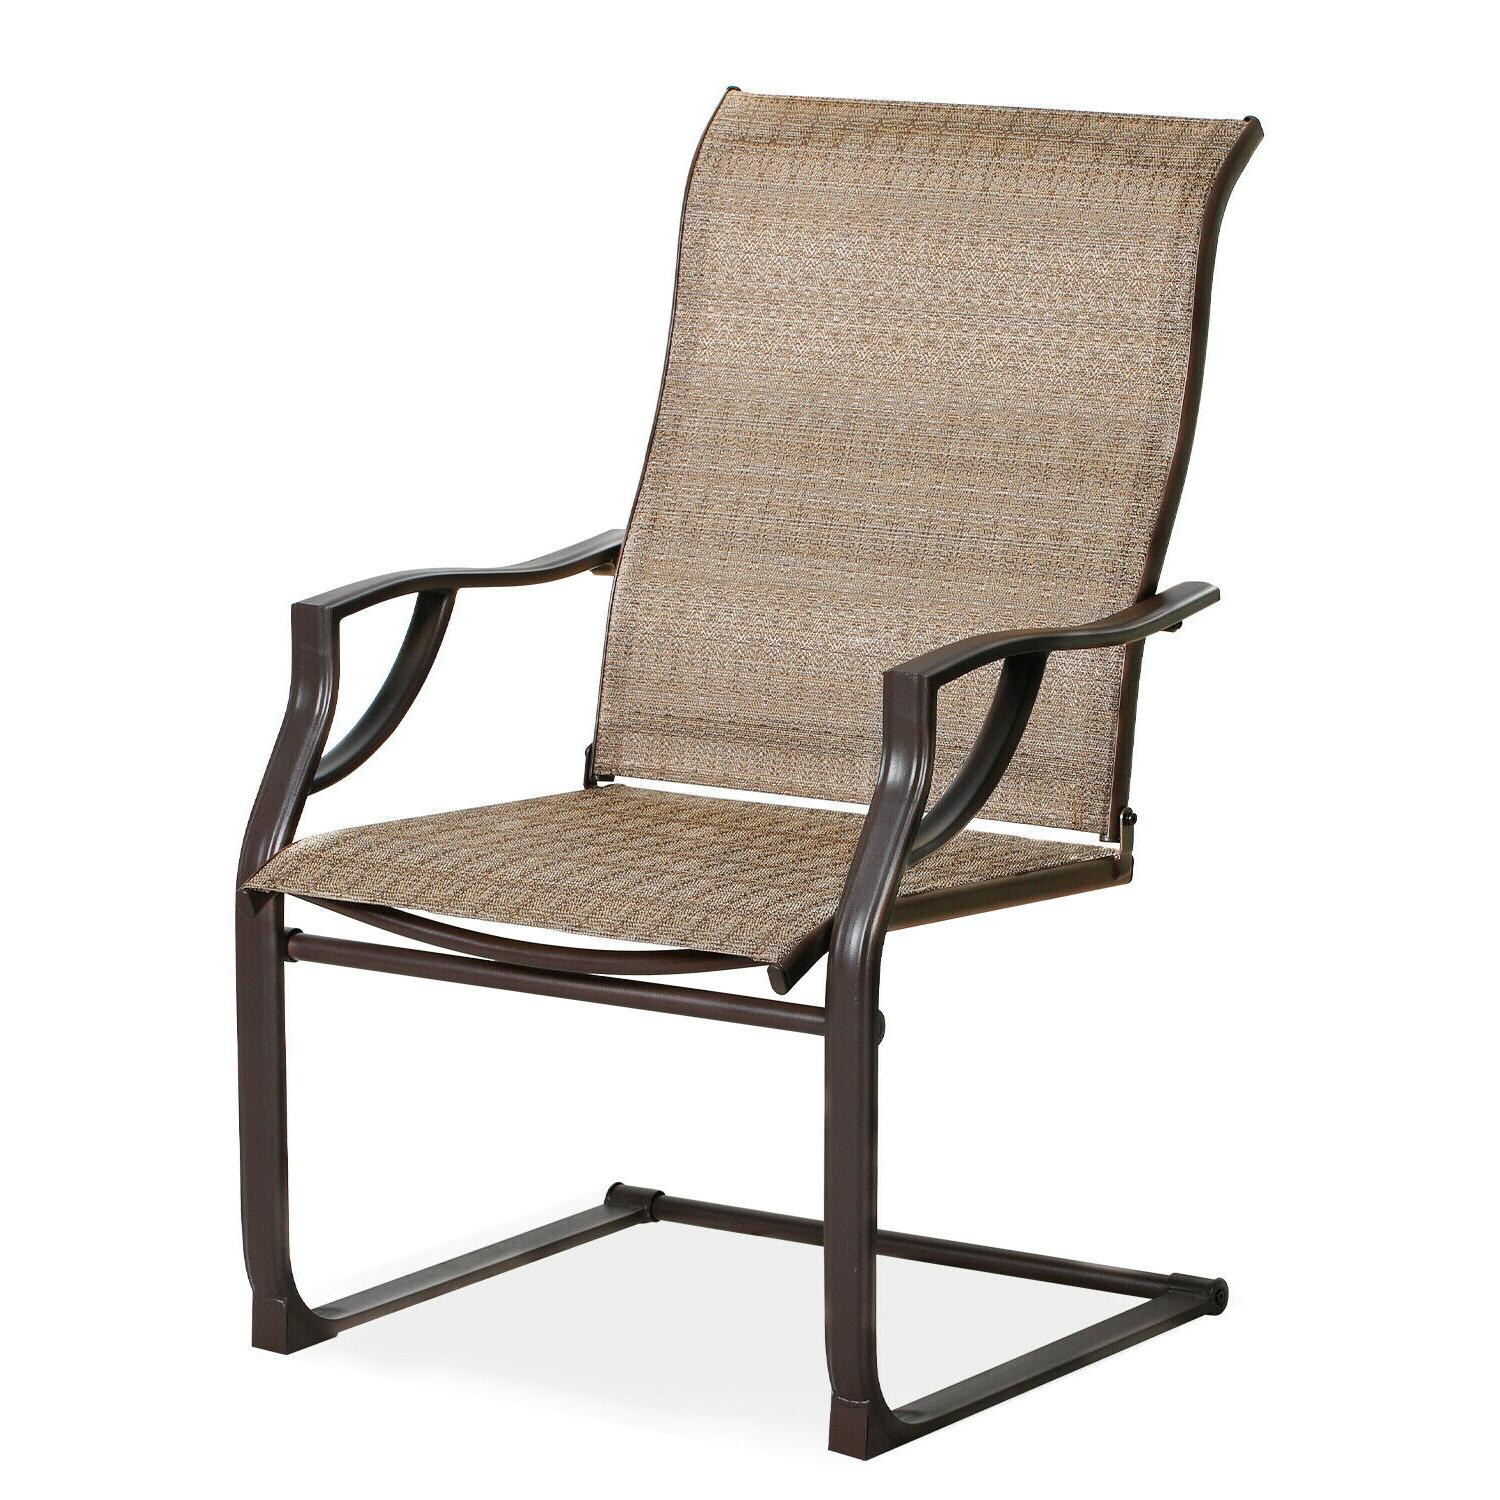 Bali Motion Patio Chairs of 2 Lawn